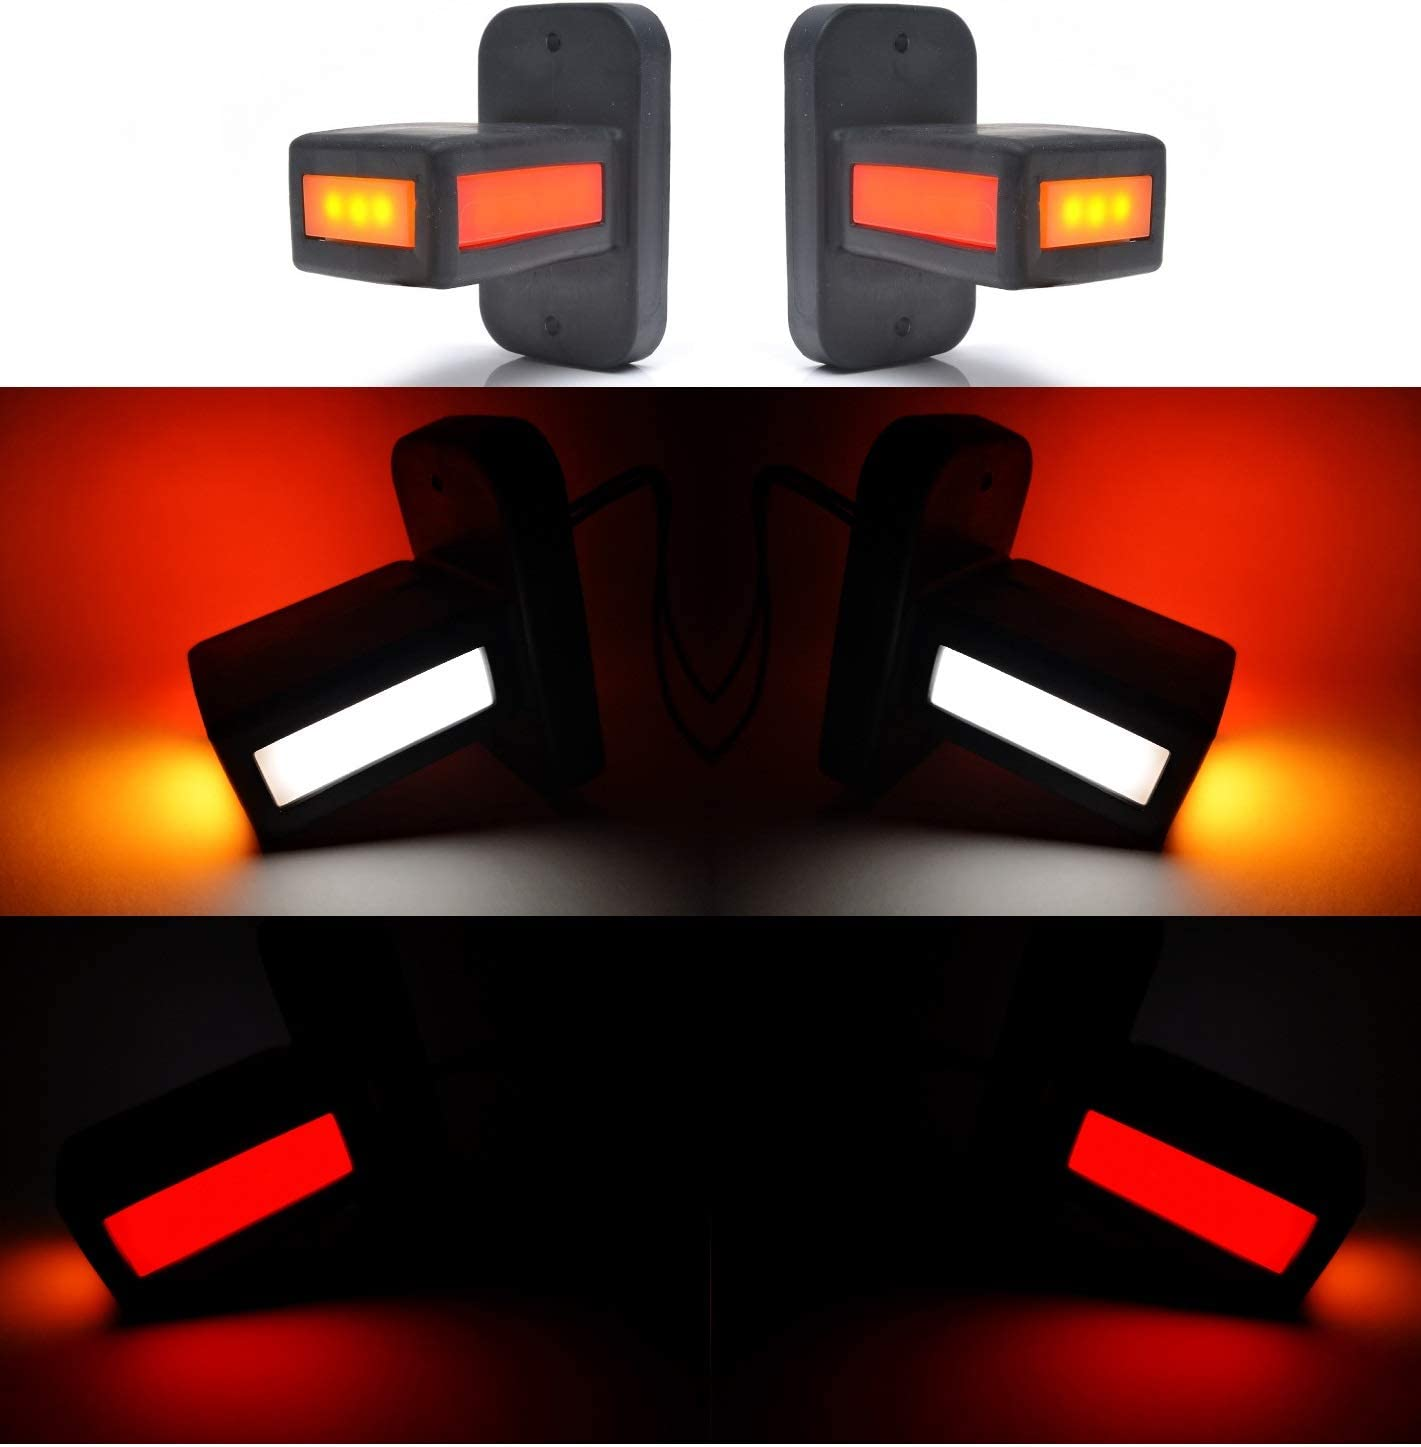 KIT PILOTOS LED NEON GALIBOS LATERALES REMOLQUE 3 COLORES 12V 24V